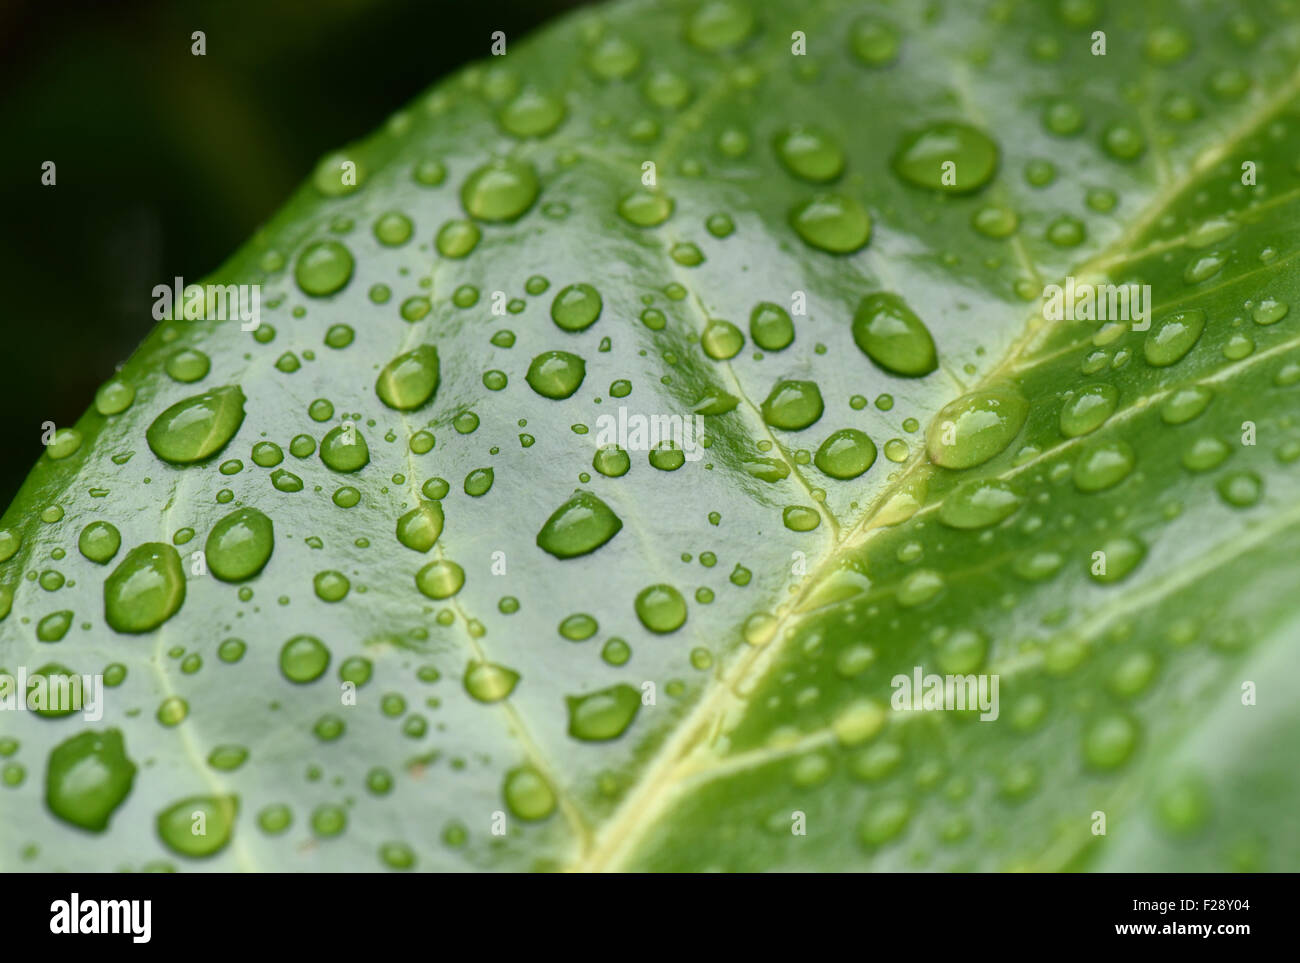 Rain water drops sitting on the shiny waxy leaf of cherry laurel, Prunus laurocerasus, Berkshire, August - Stock Image